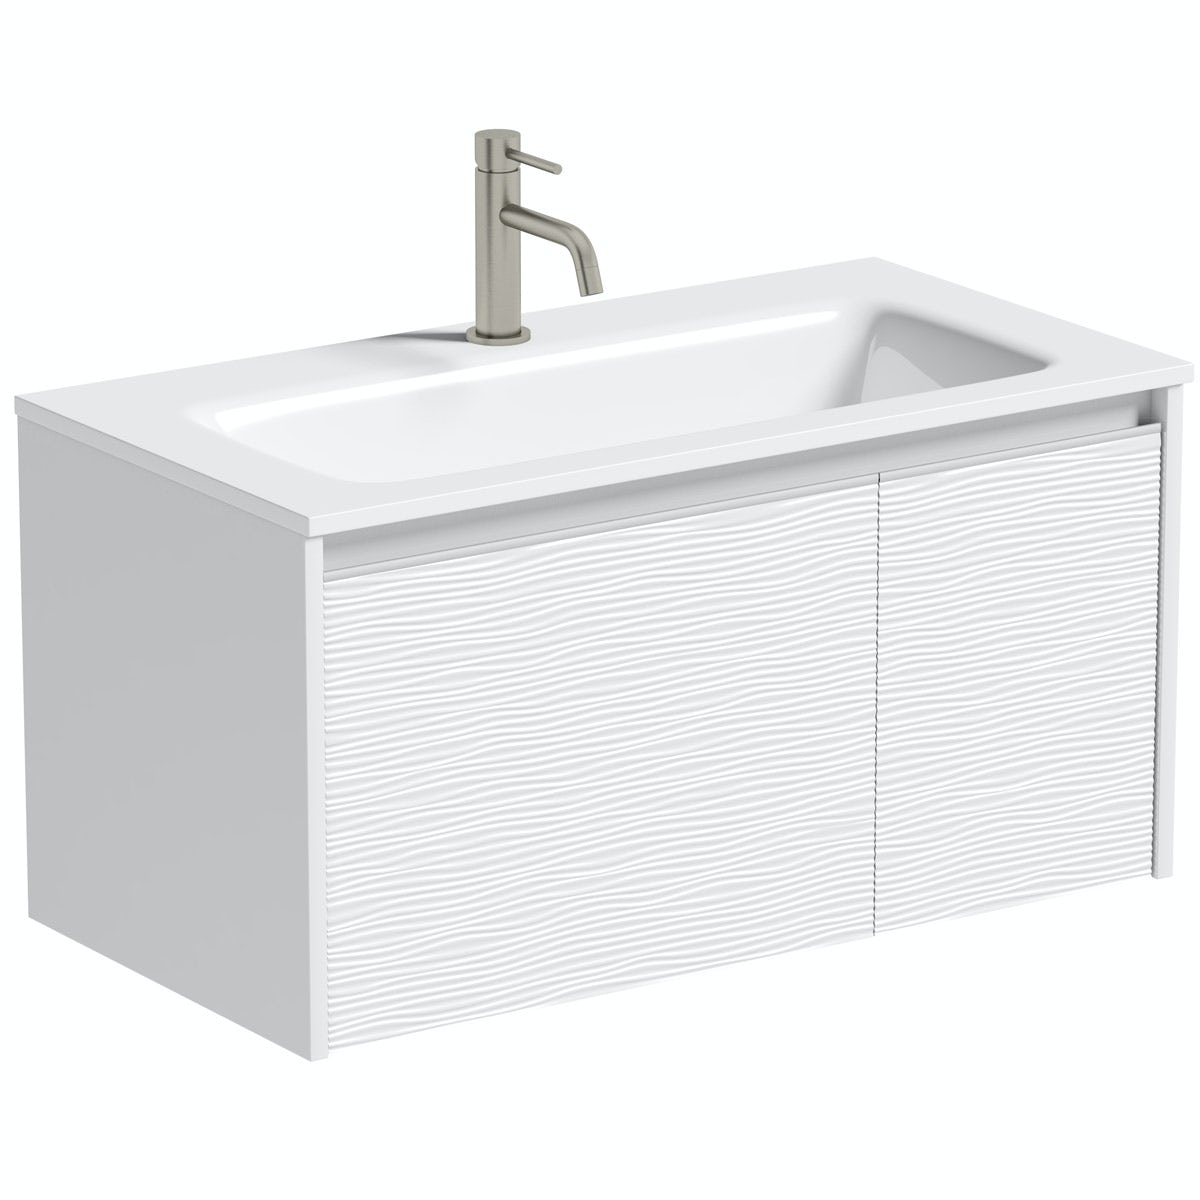 Mode Banks matt white wall hung vanity unit 800mm